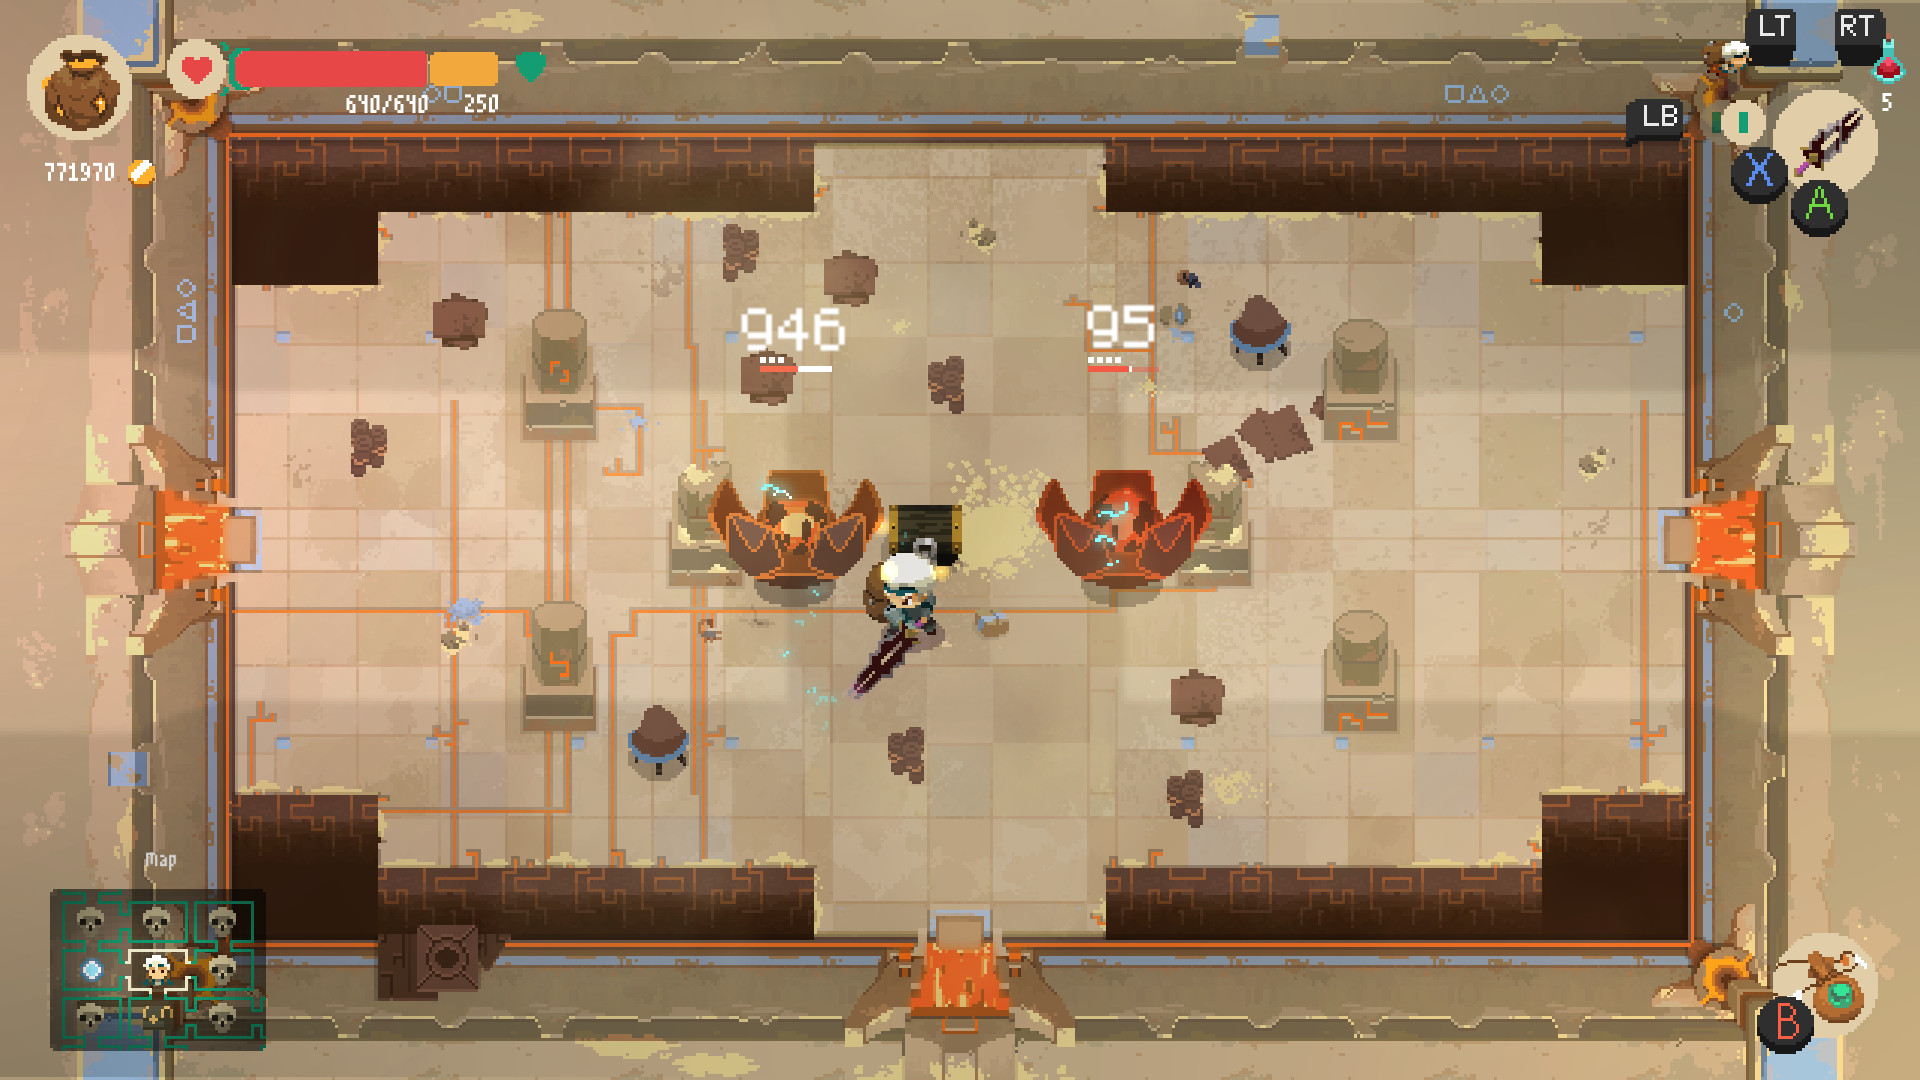 Moonlighter for switch